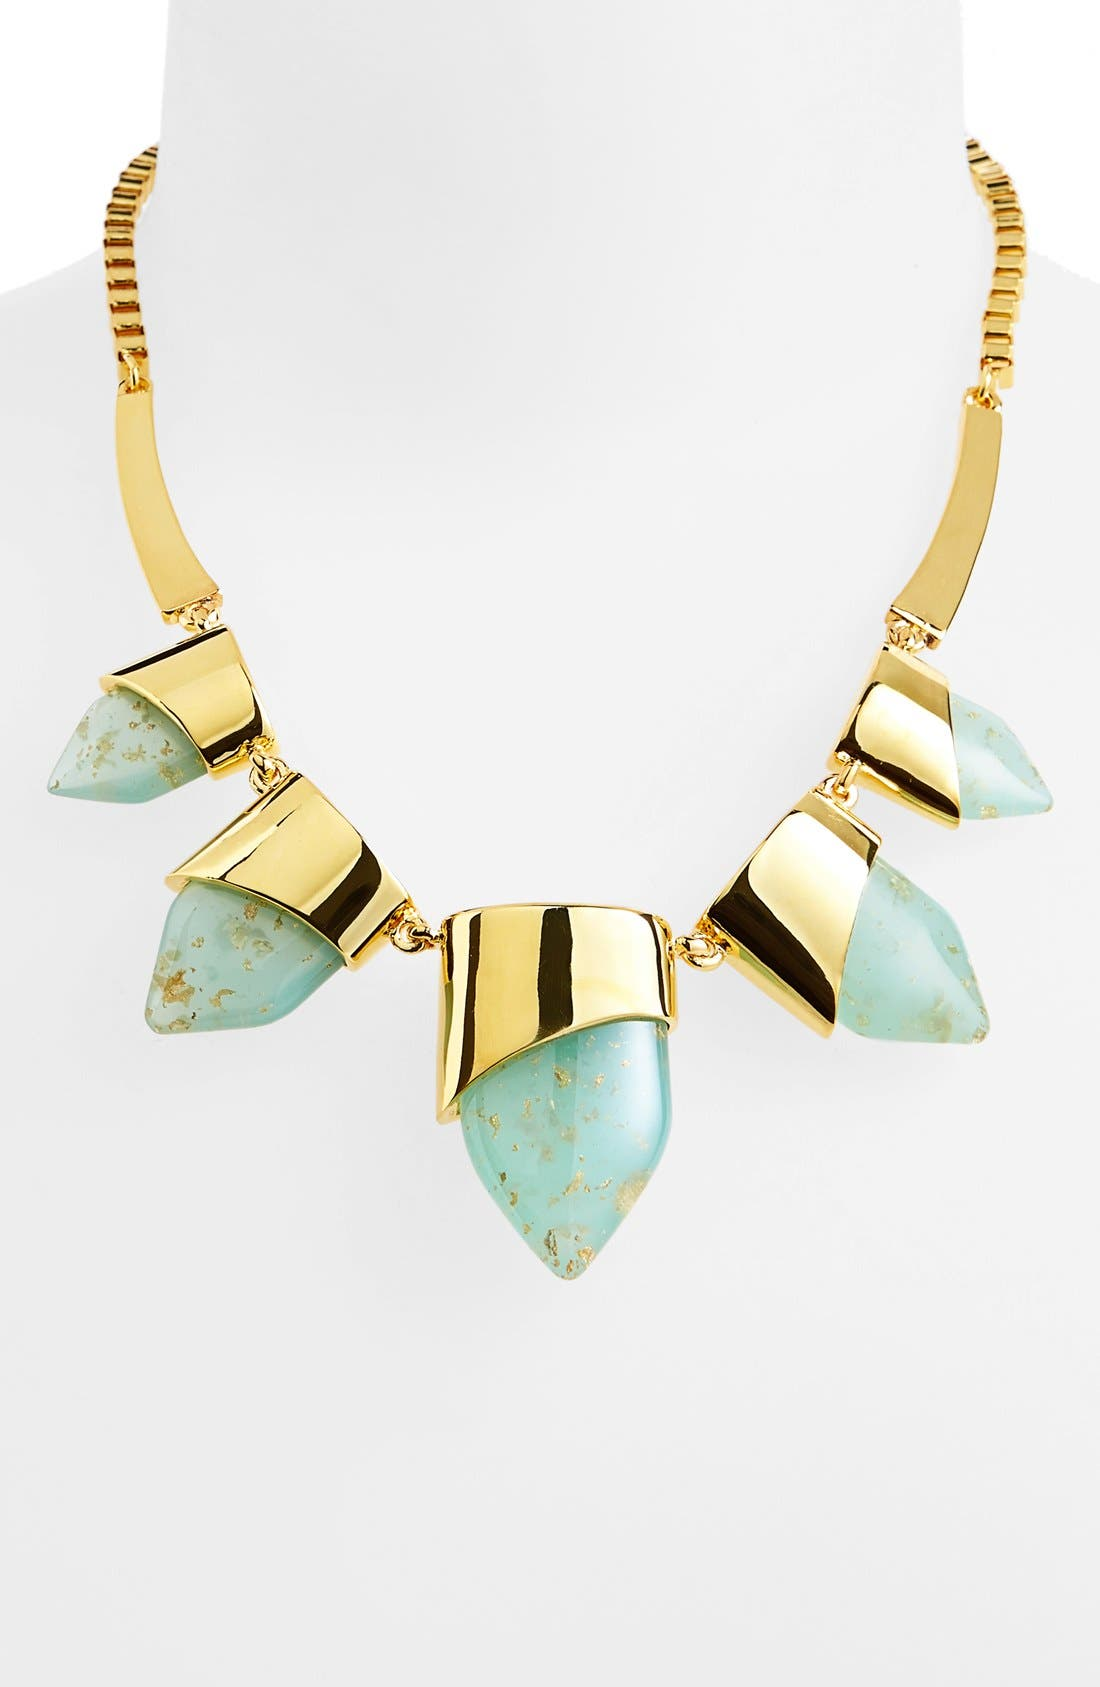 Main Image - Vince Camuto 'Smooth Moves' Frontal Necklace